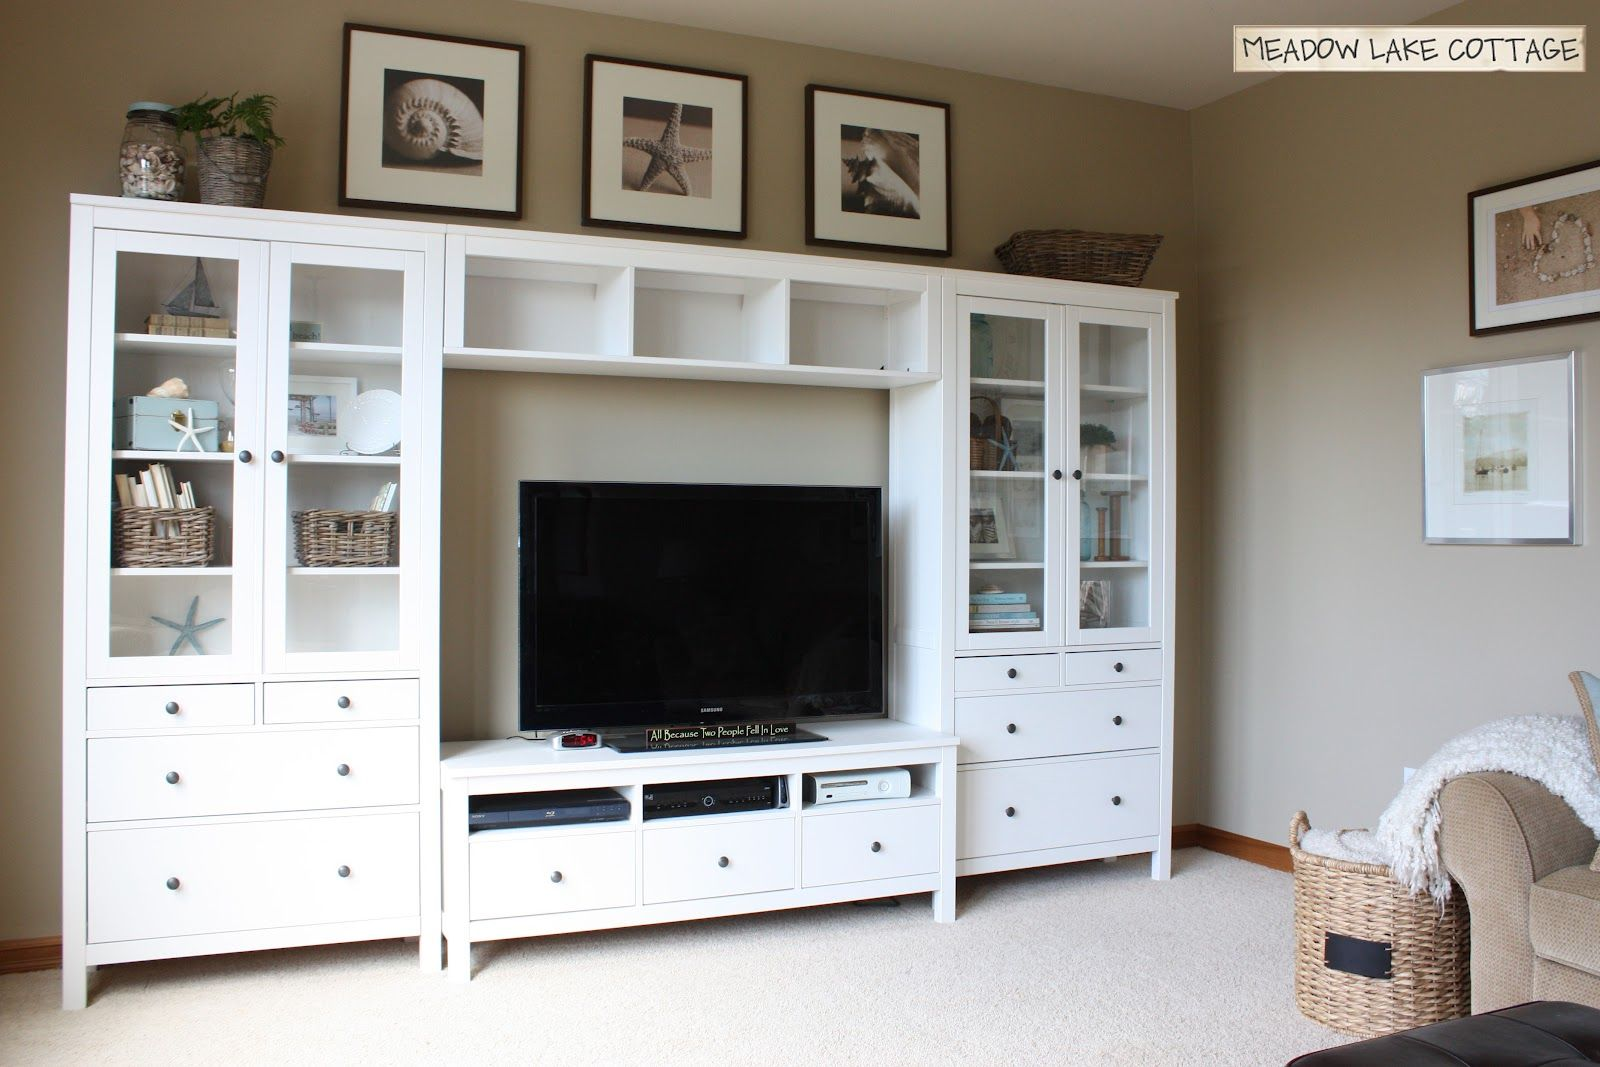 hemnes entertainment center ikea ikea tv ikea living. Black Bedroom Furniture Sets. Home Design Ideas